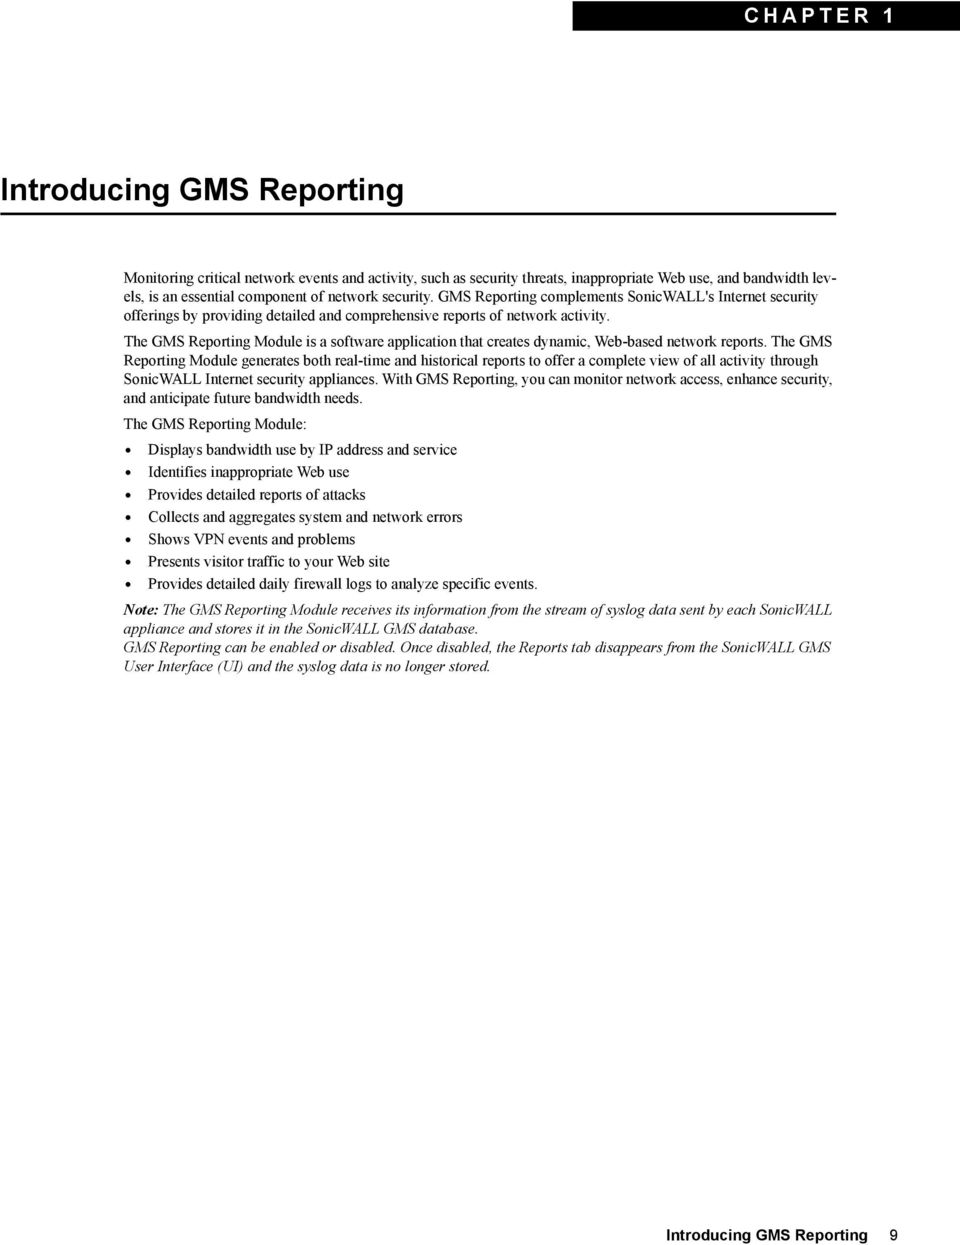 The GMS Reporting Module is a software application that creates dynamic, Web-based network reports.